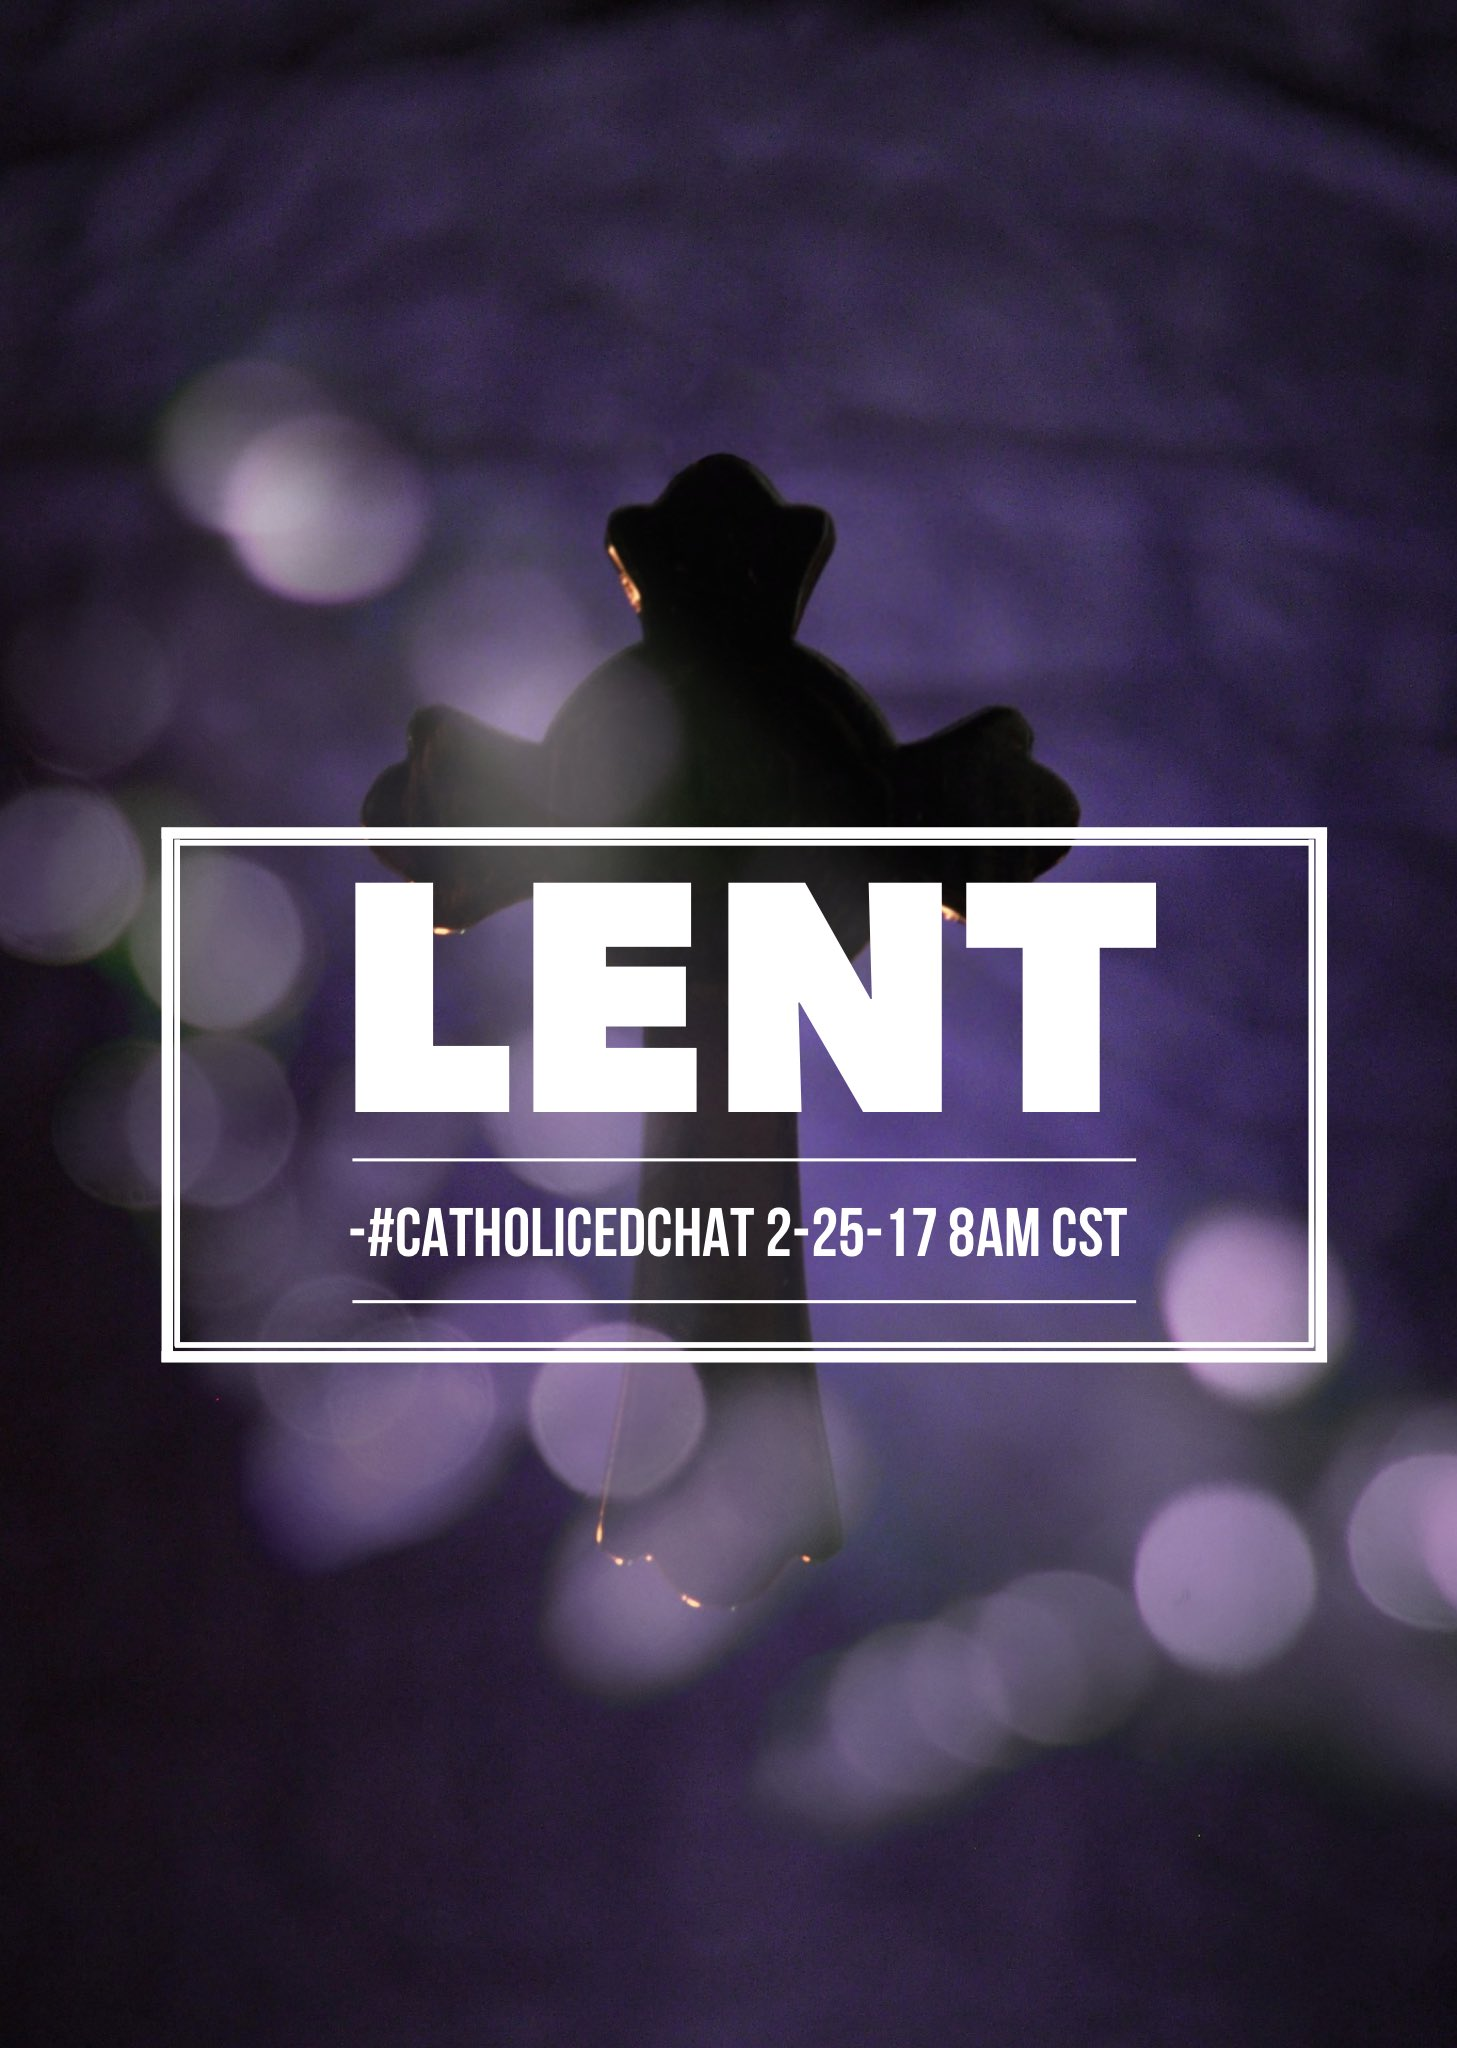 We happily welcome @beththomas for today's chat topic with  #CatholicEdChat #LENT https://t.co/mLNhhenJll